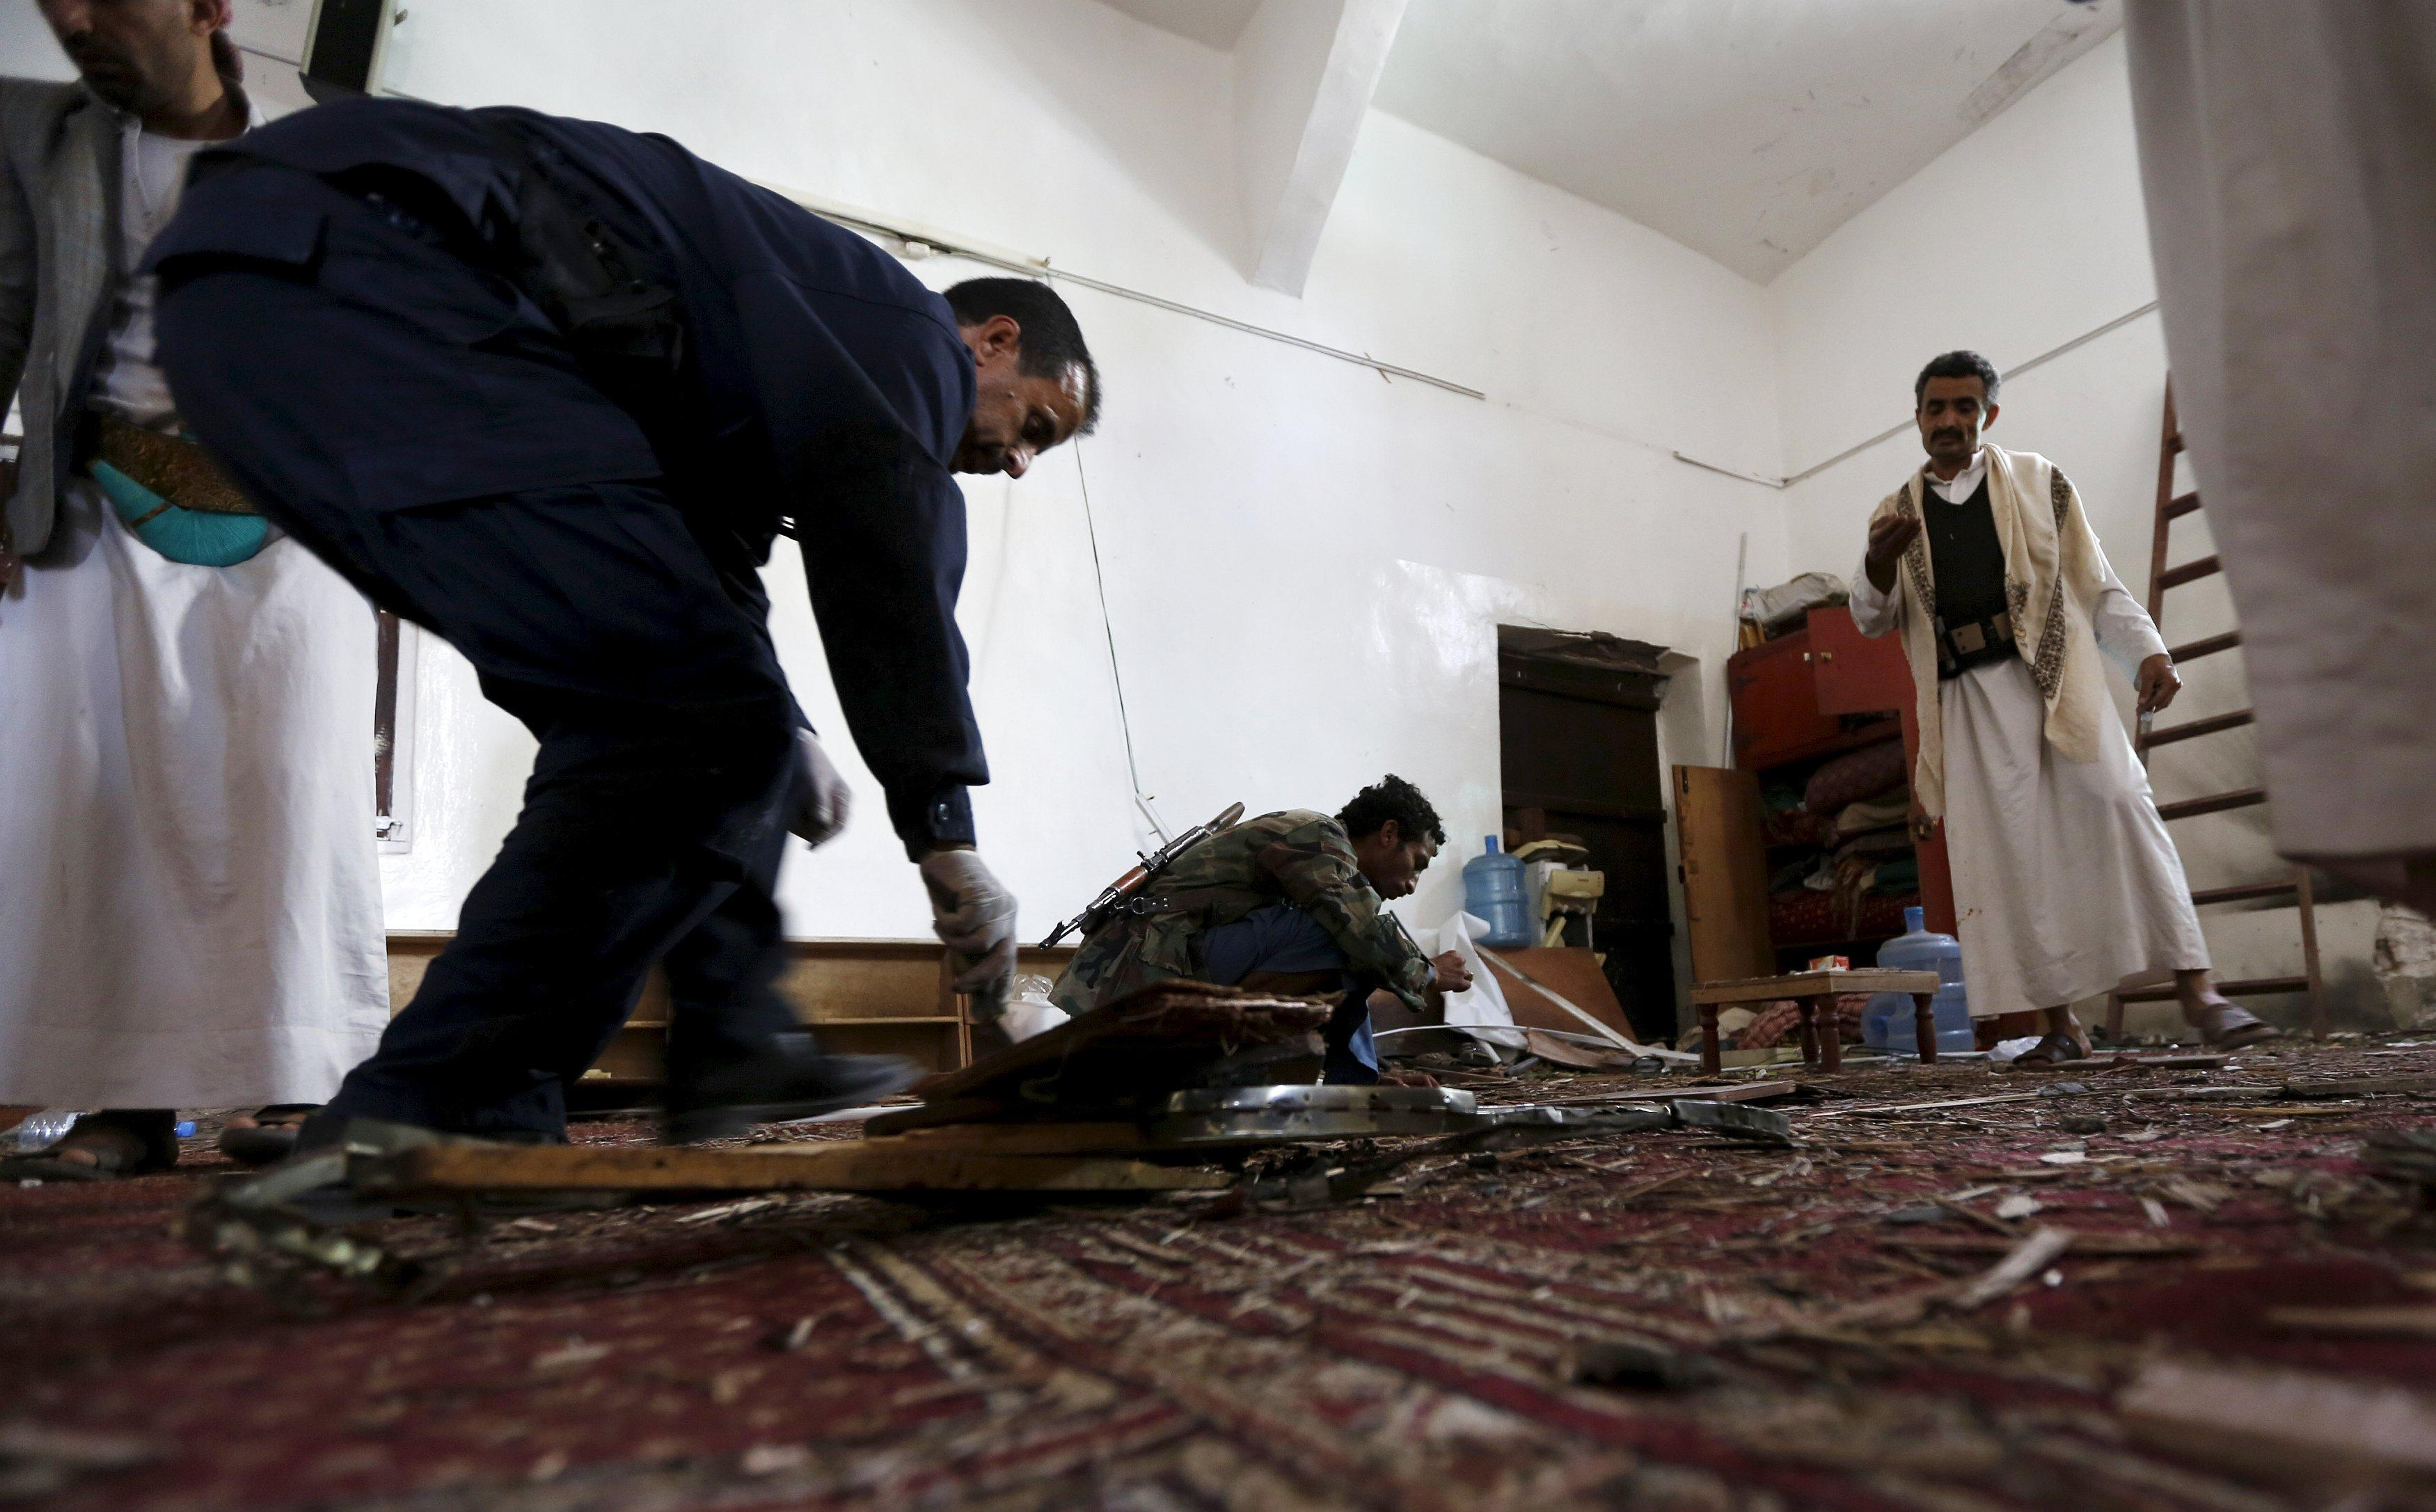 Islamic State claims Yemen mosque attack: Islamic State Twitter statement